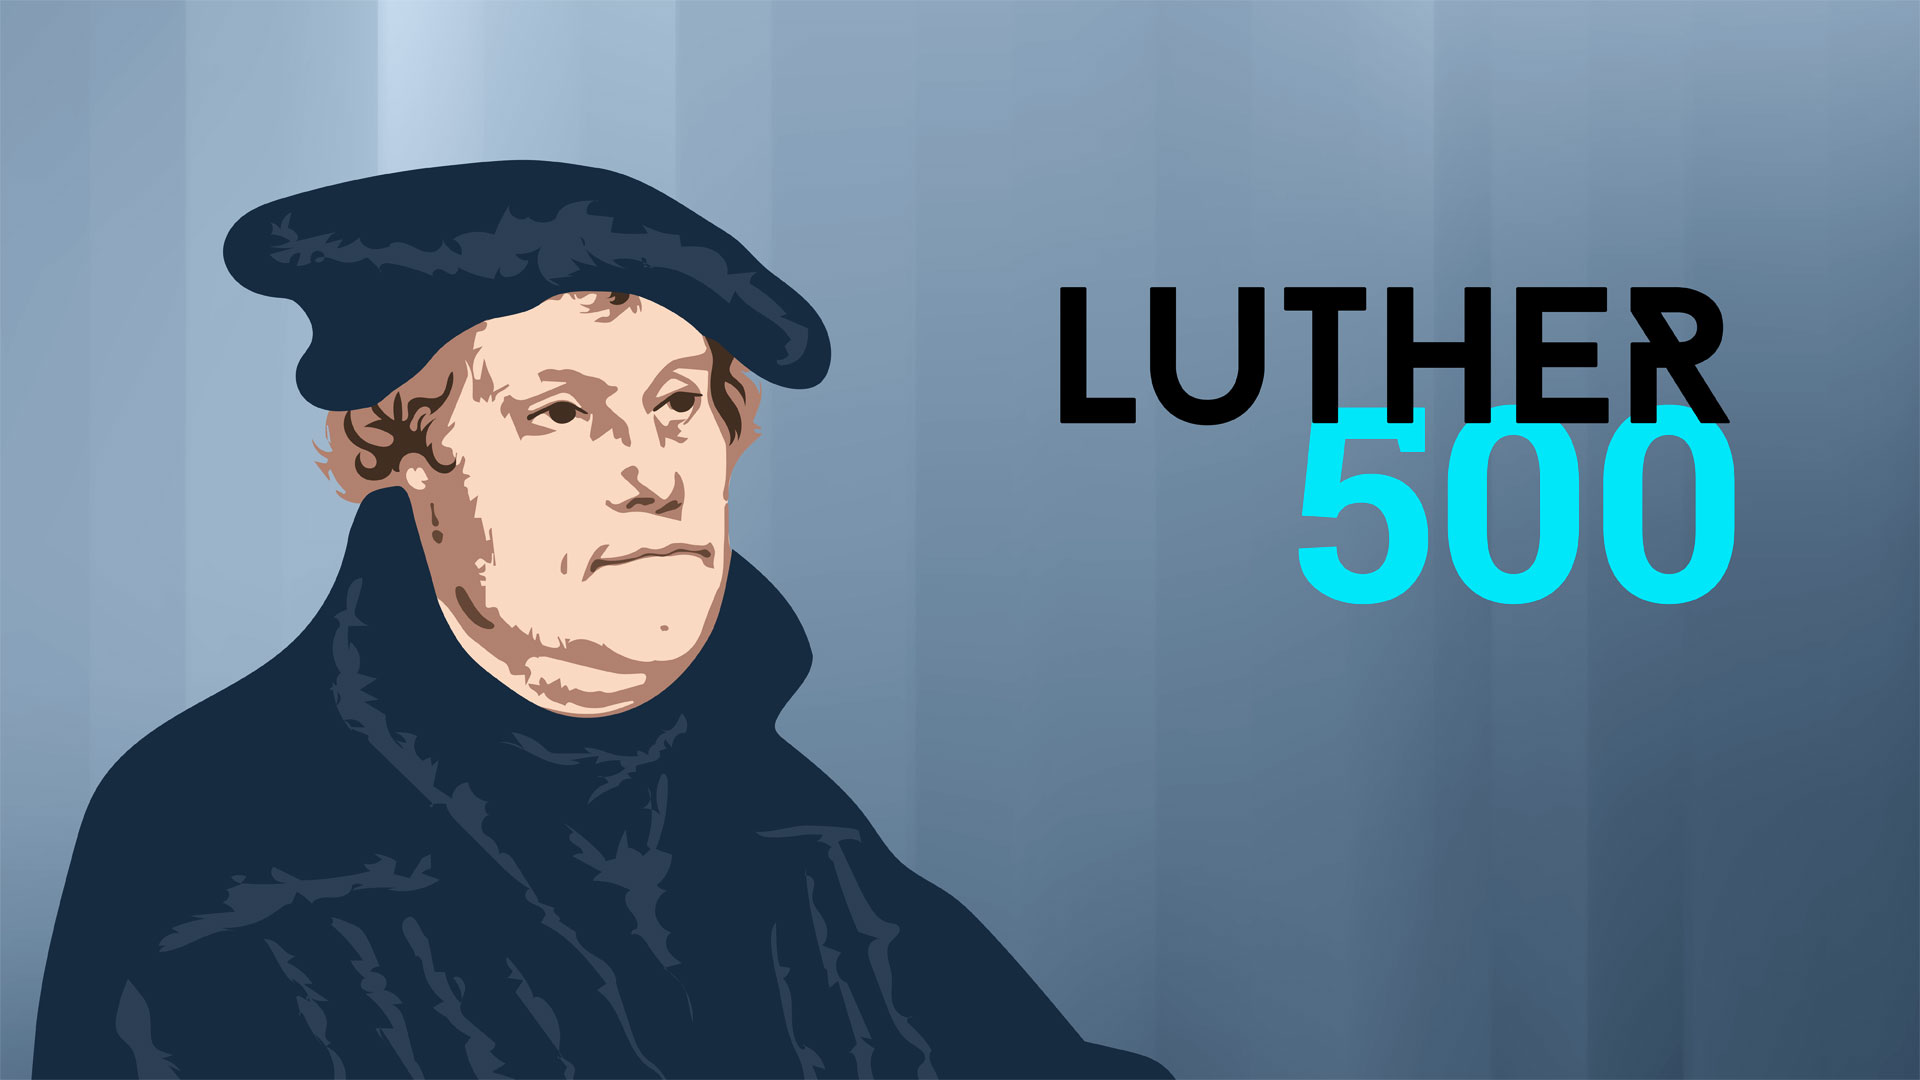 Luther 500 - Trailer